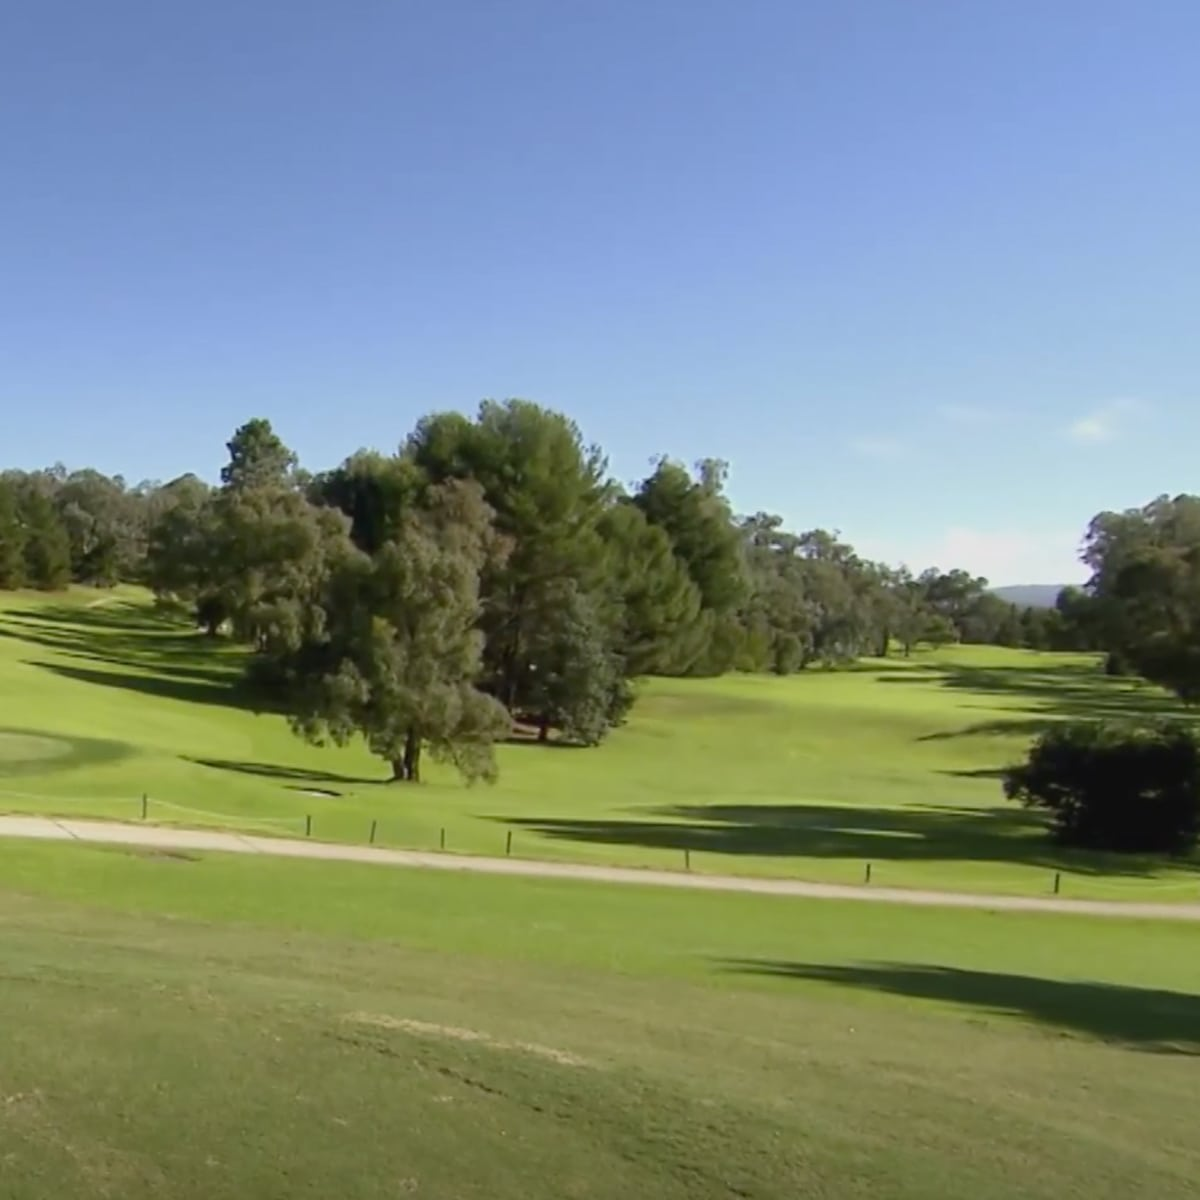 Images of the golf holes at Commercial Golf Resort Albury